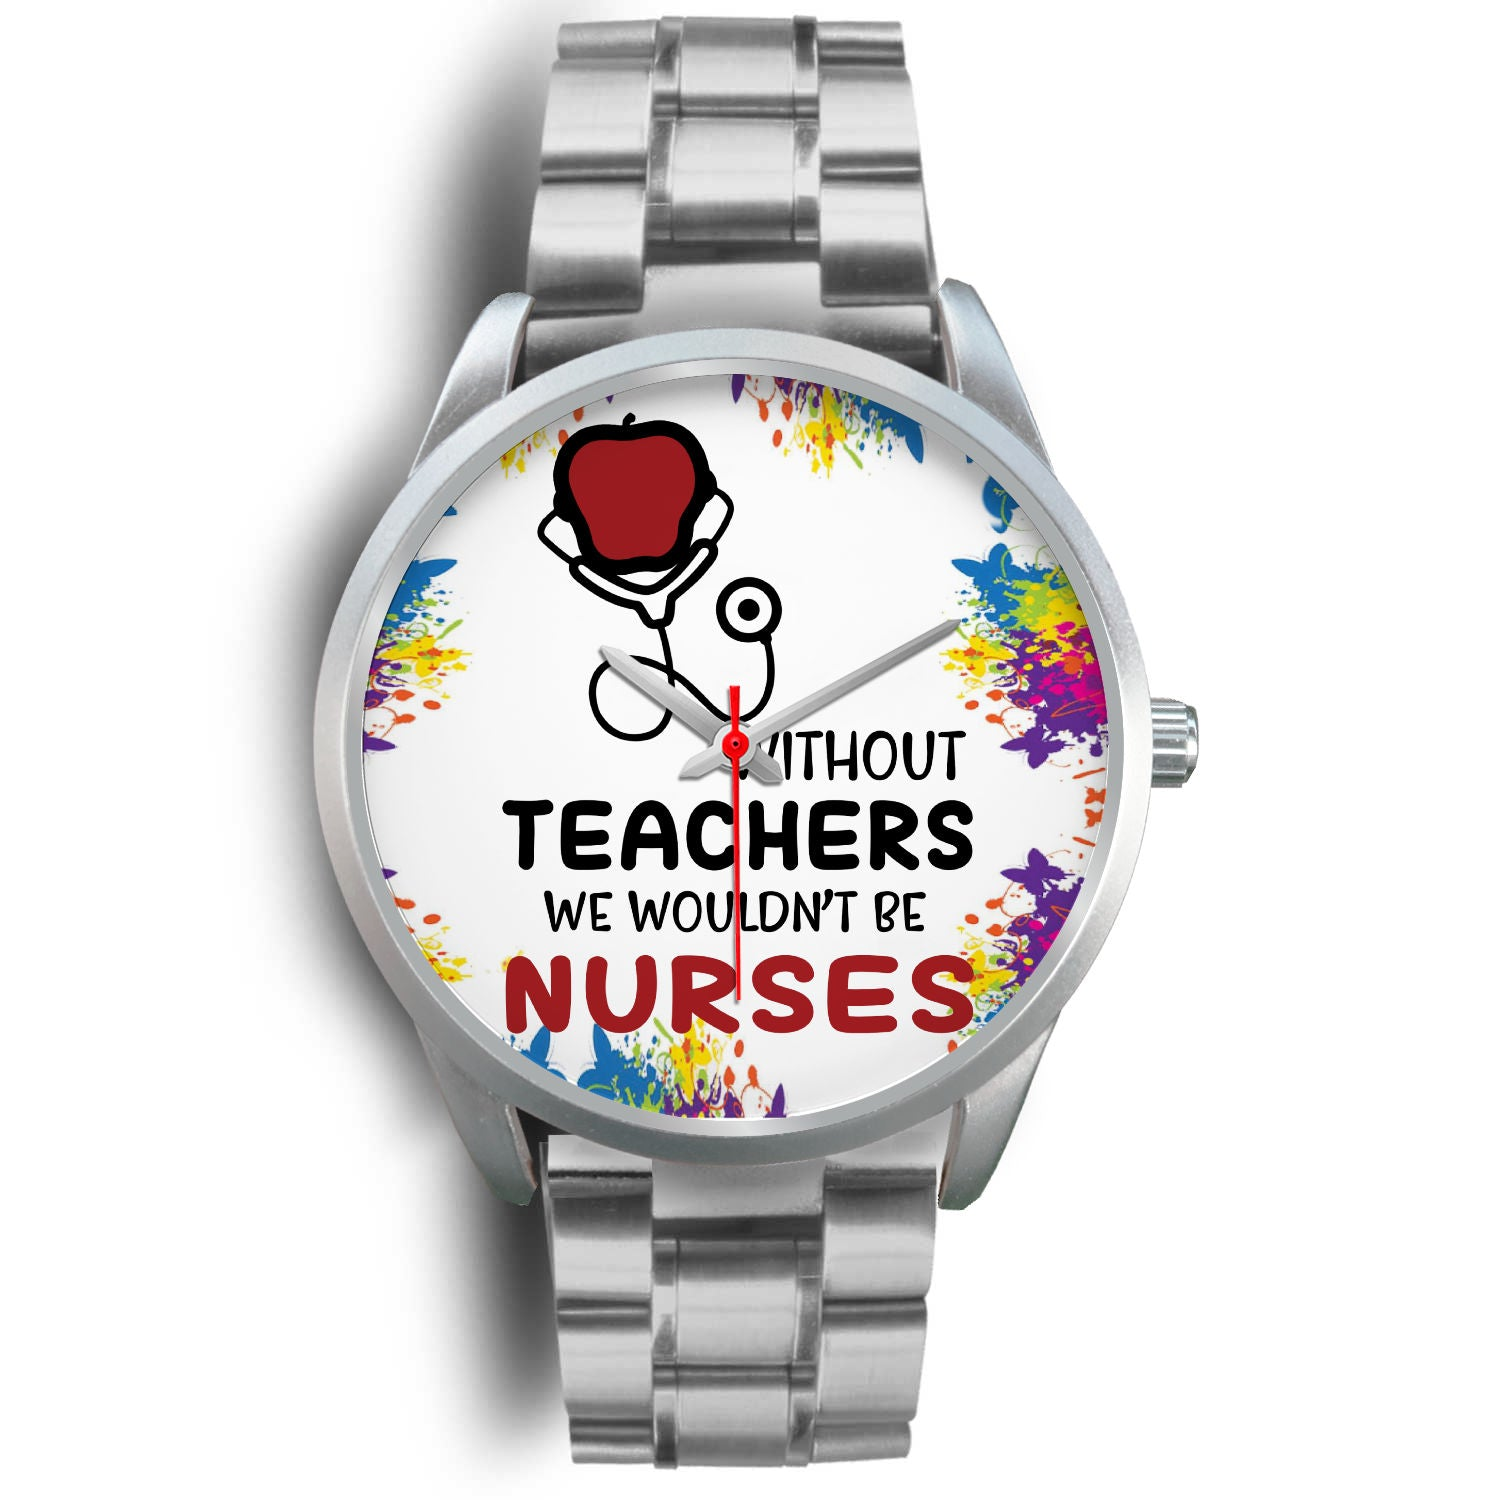 VIRA silver stainless steel watch for awesome teachers & nurses